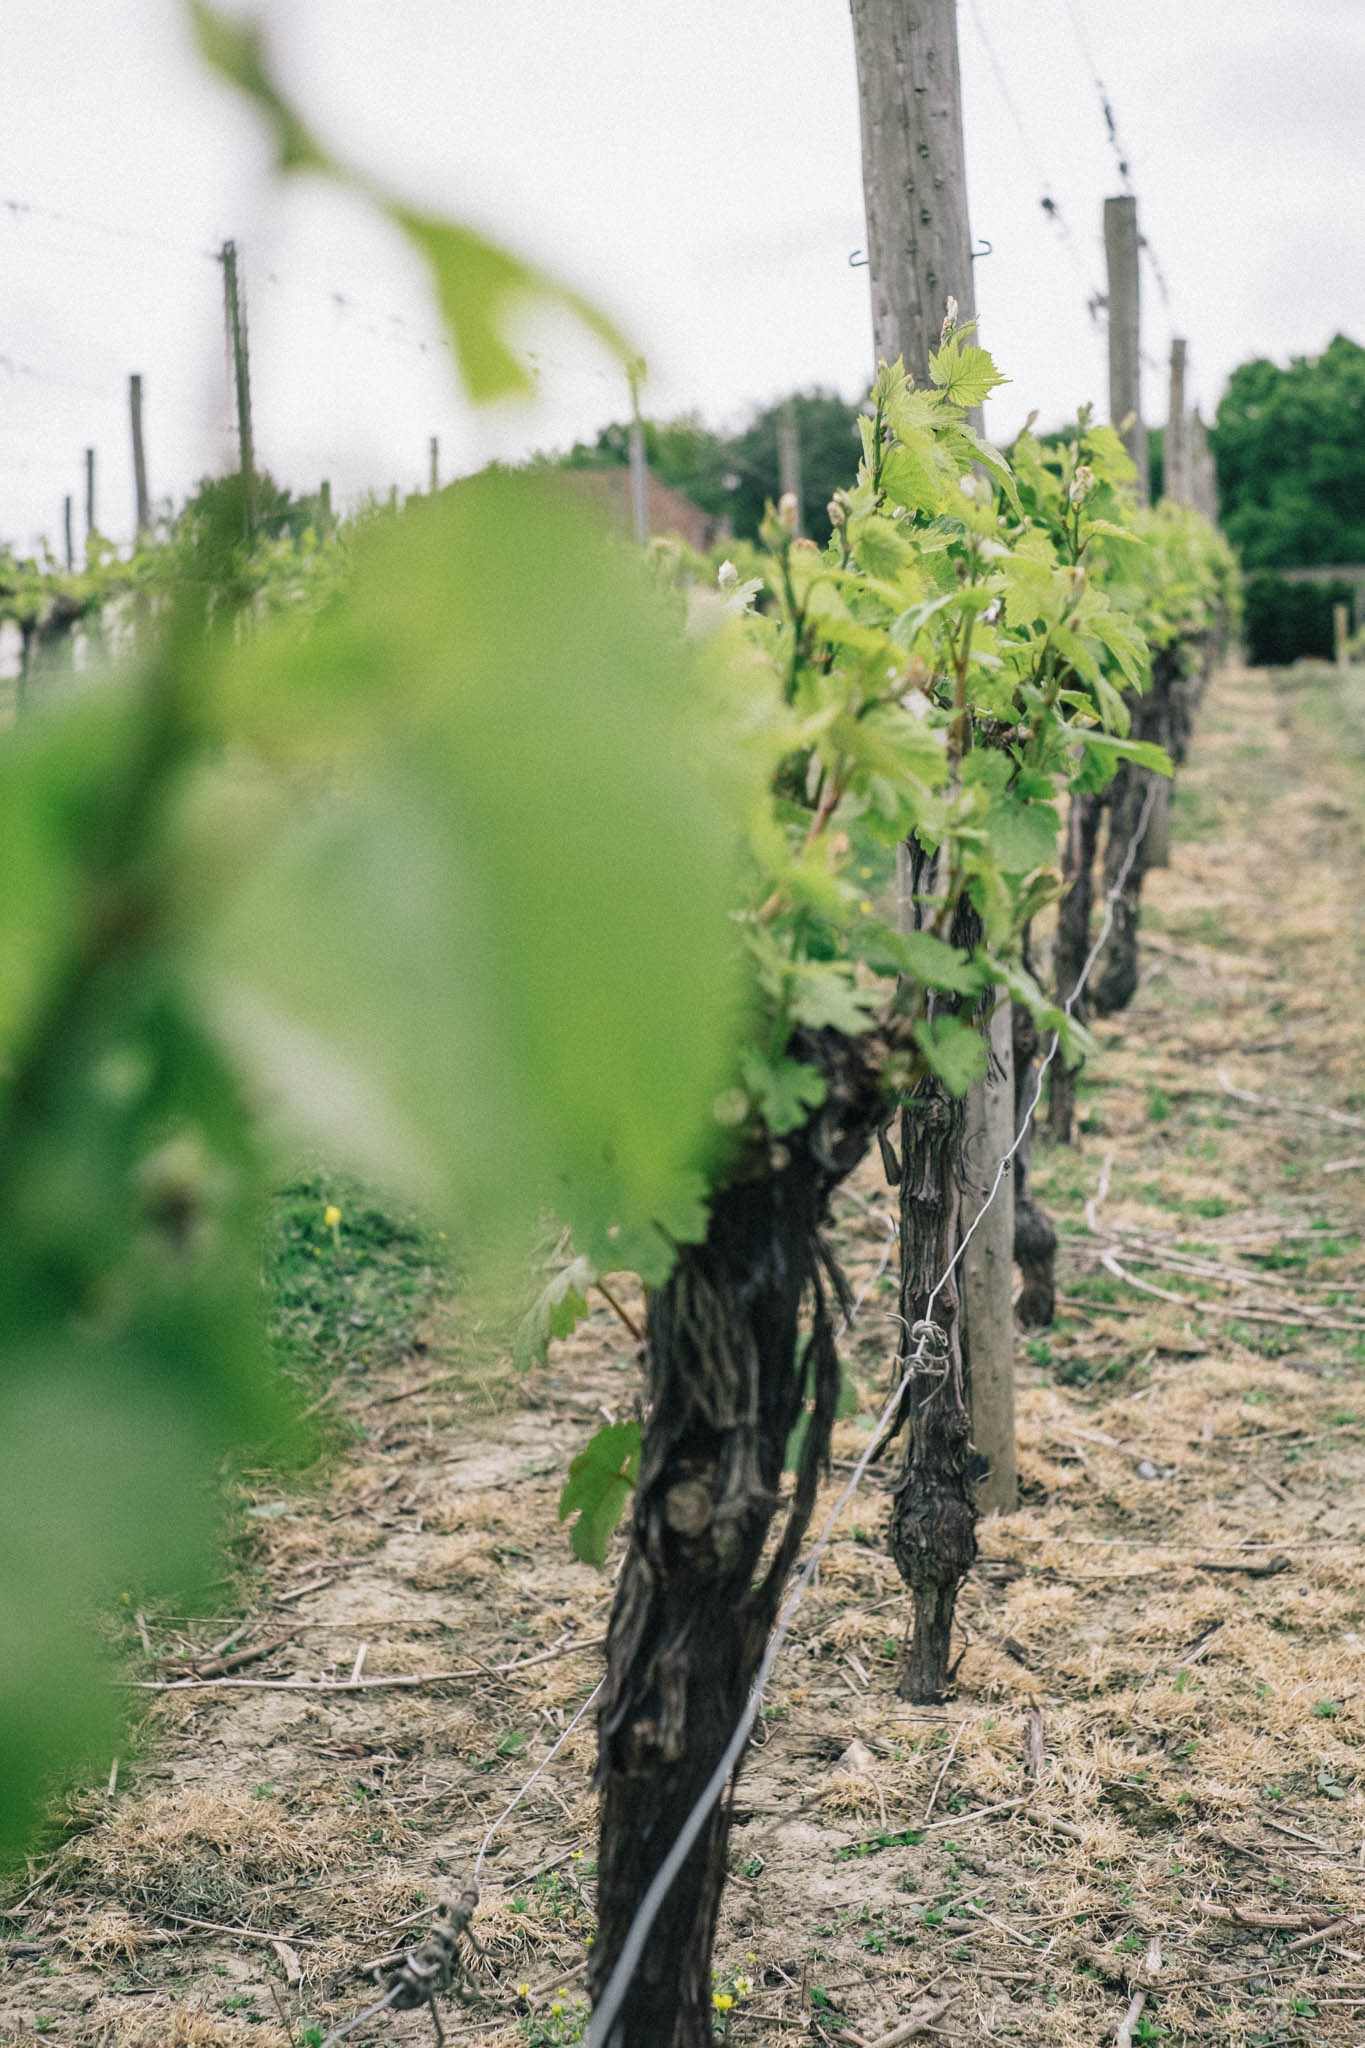 Sussex wine and vineyard bus tour by Brighton Food Festival. Photography by Emma Gutteridge for Retreat blog.